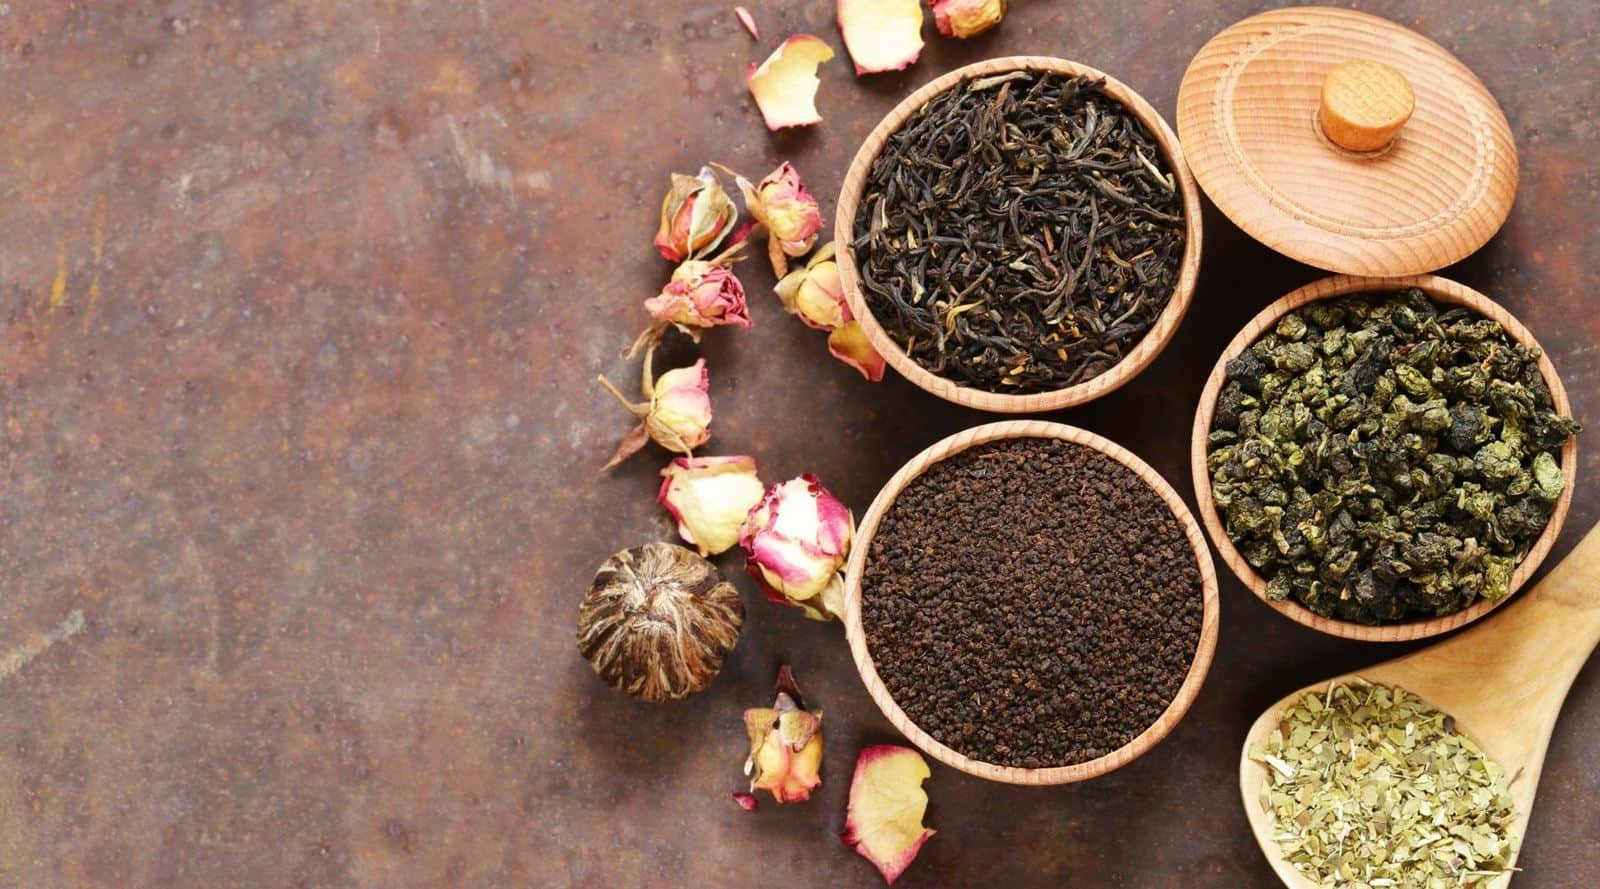 how to store loose leaf tea properly?